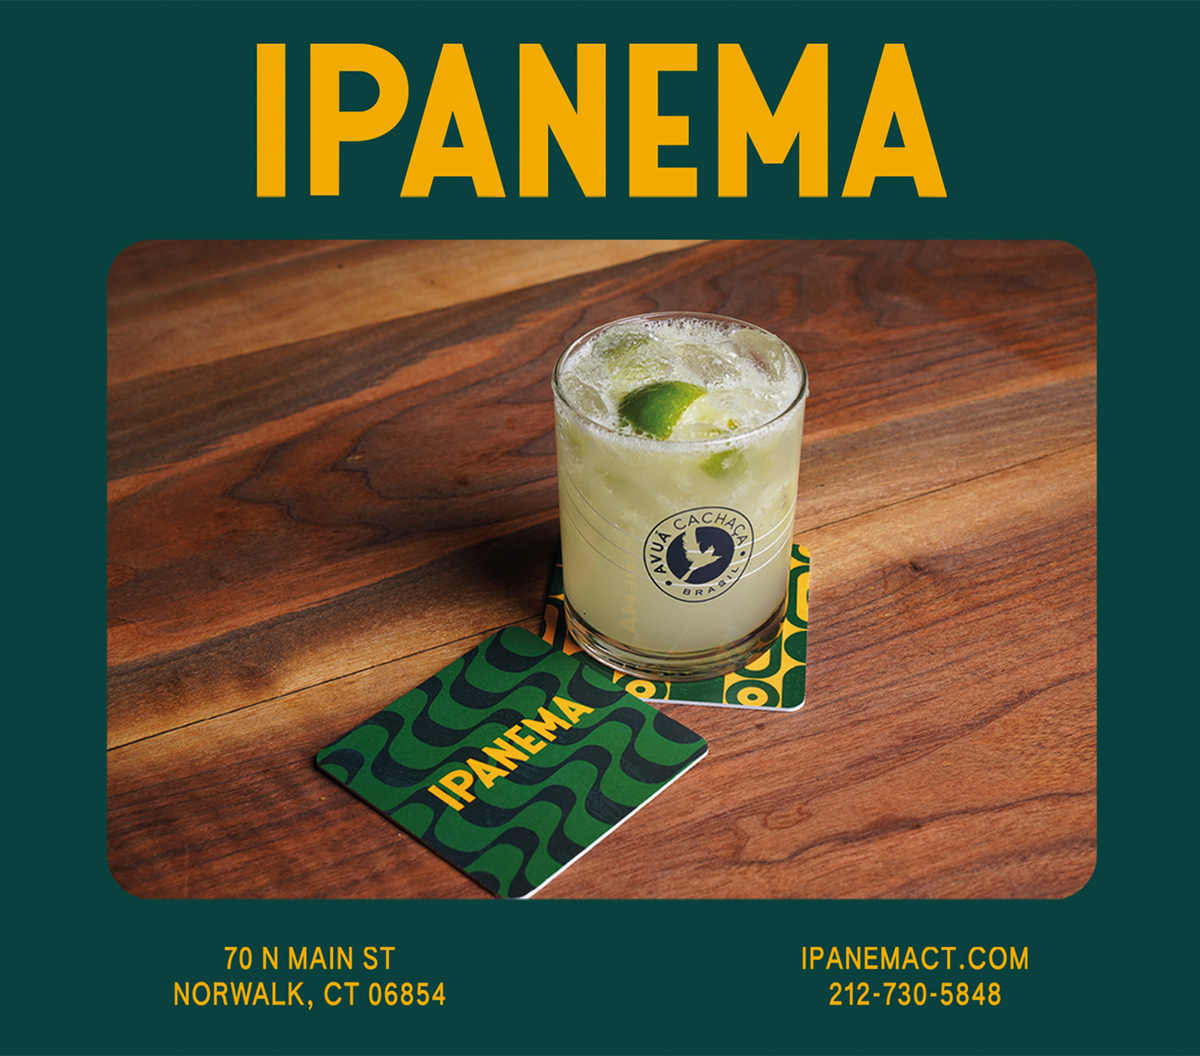 drink on table with ipanema branding